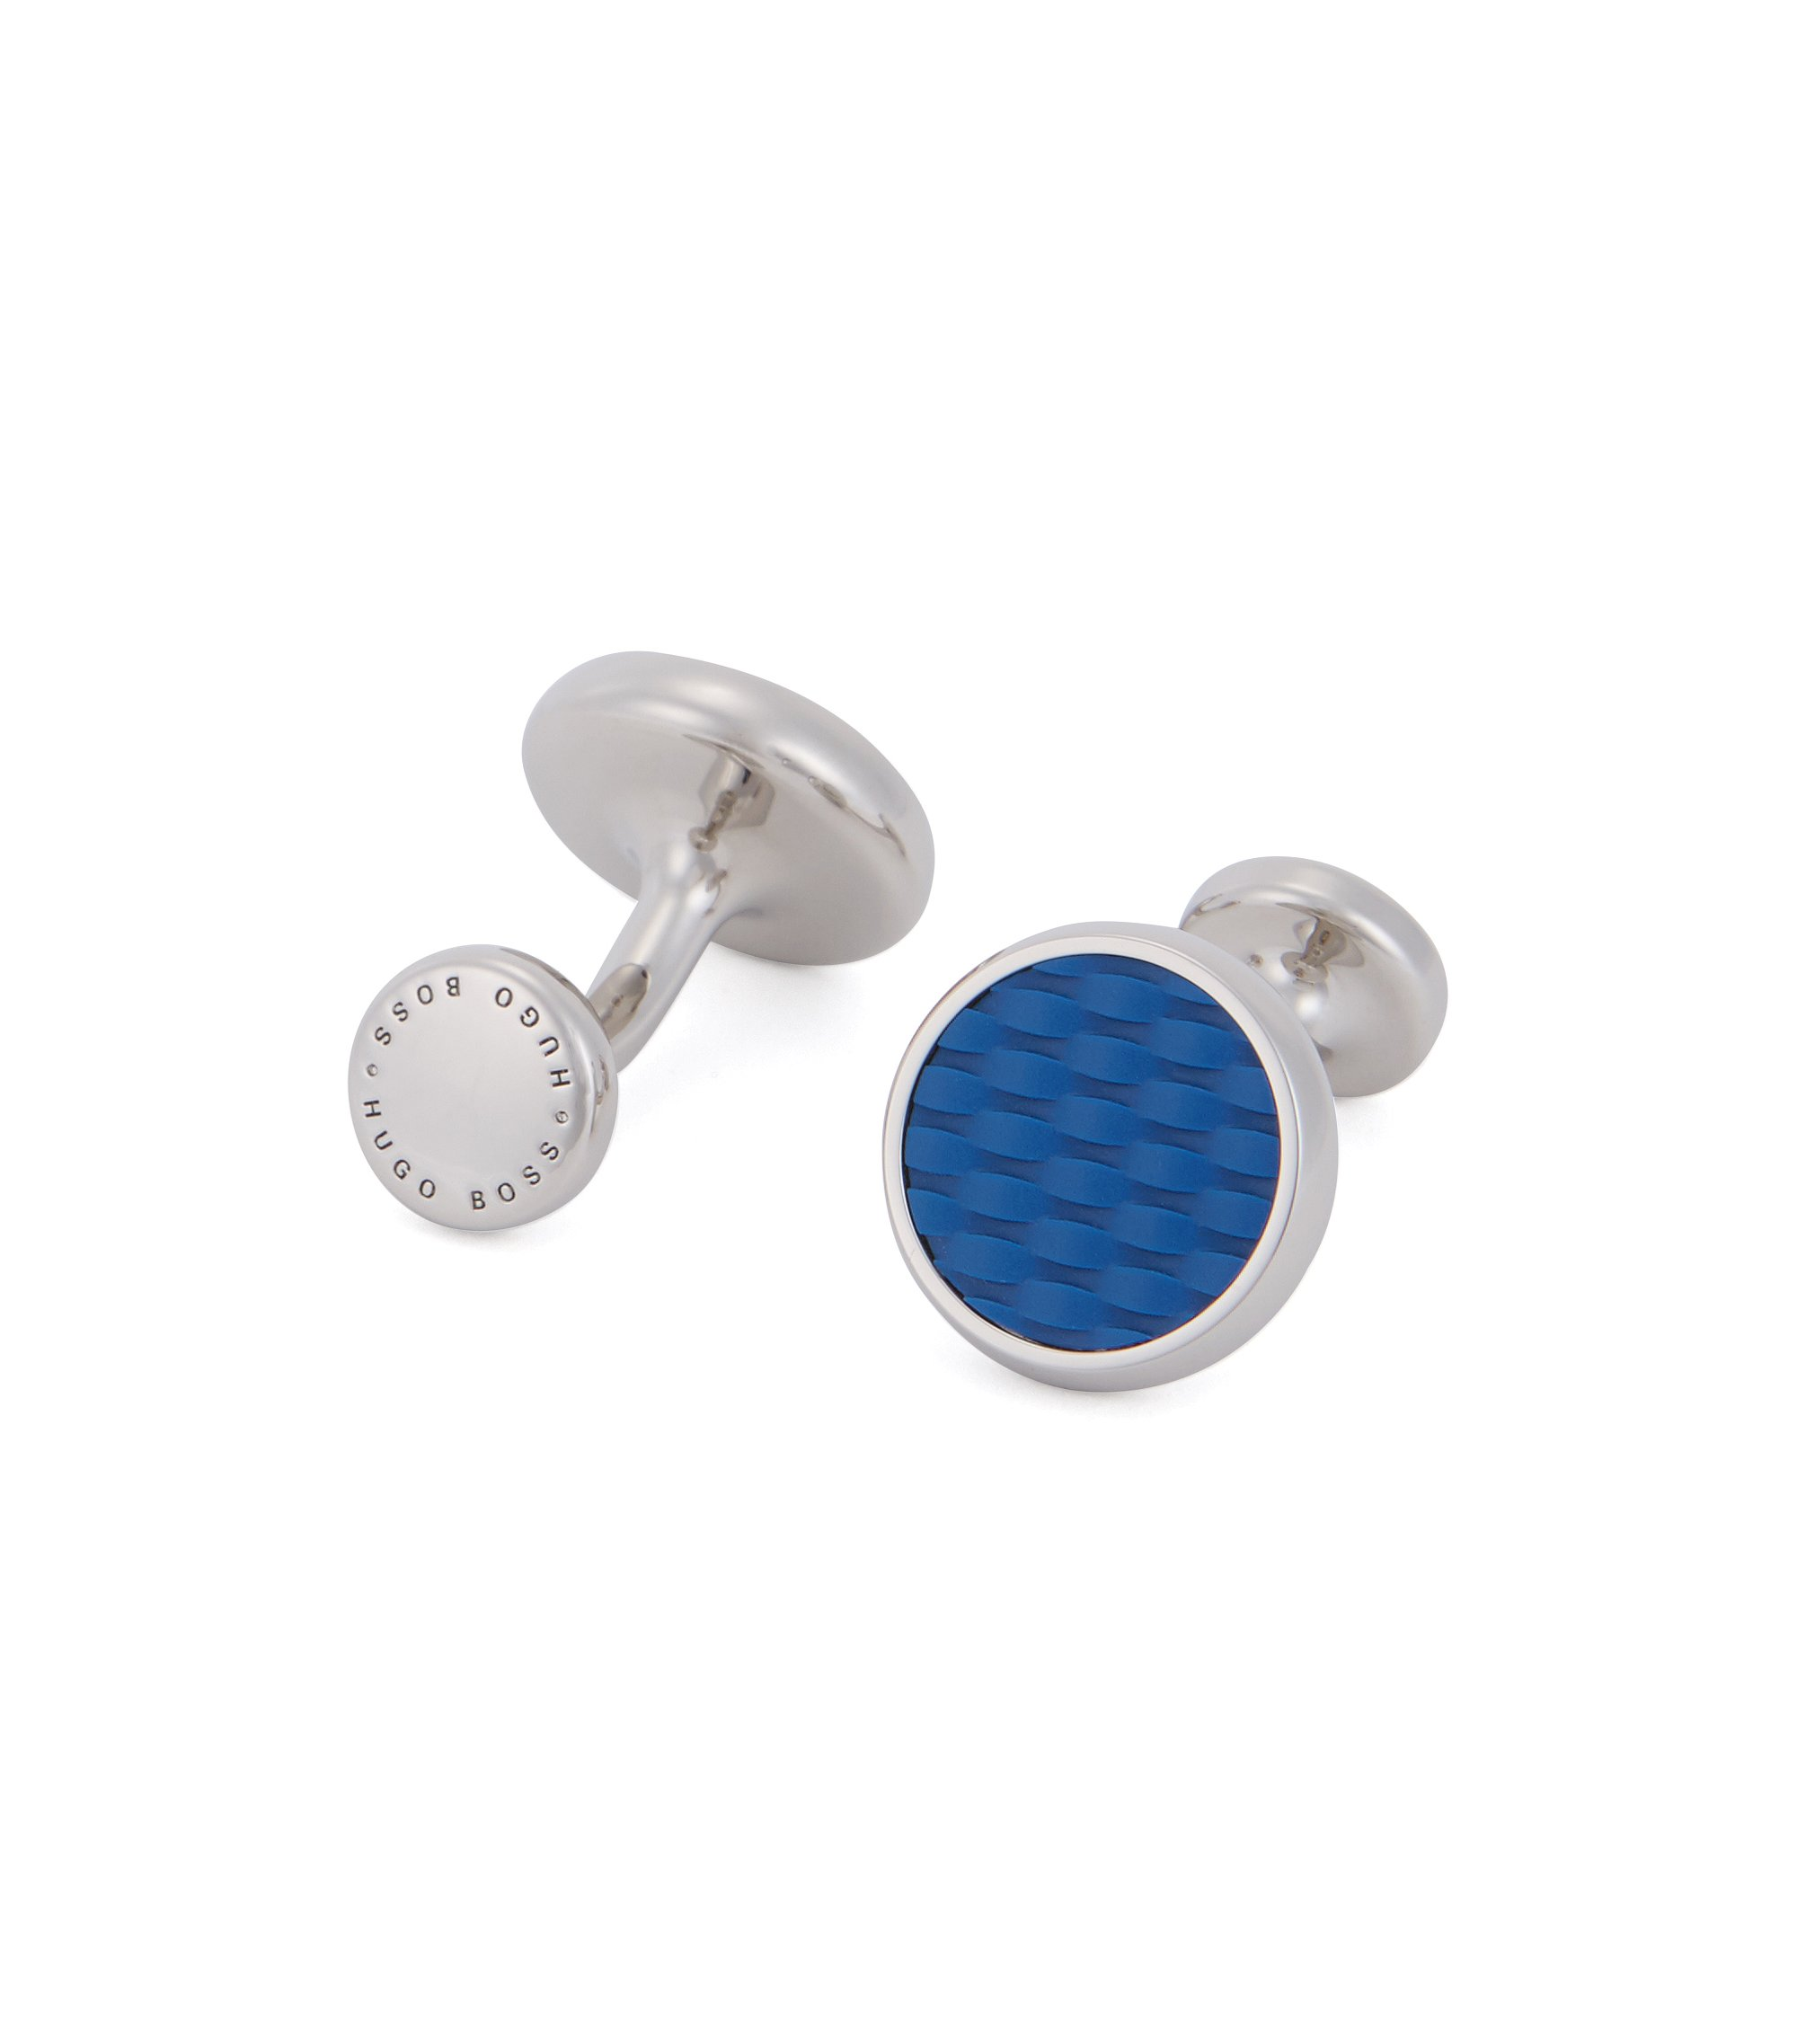 Hand-polished cufflinks with textured enamel inserts, Blue